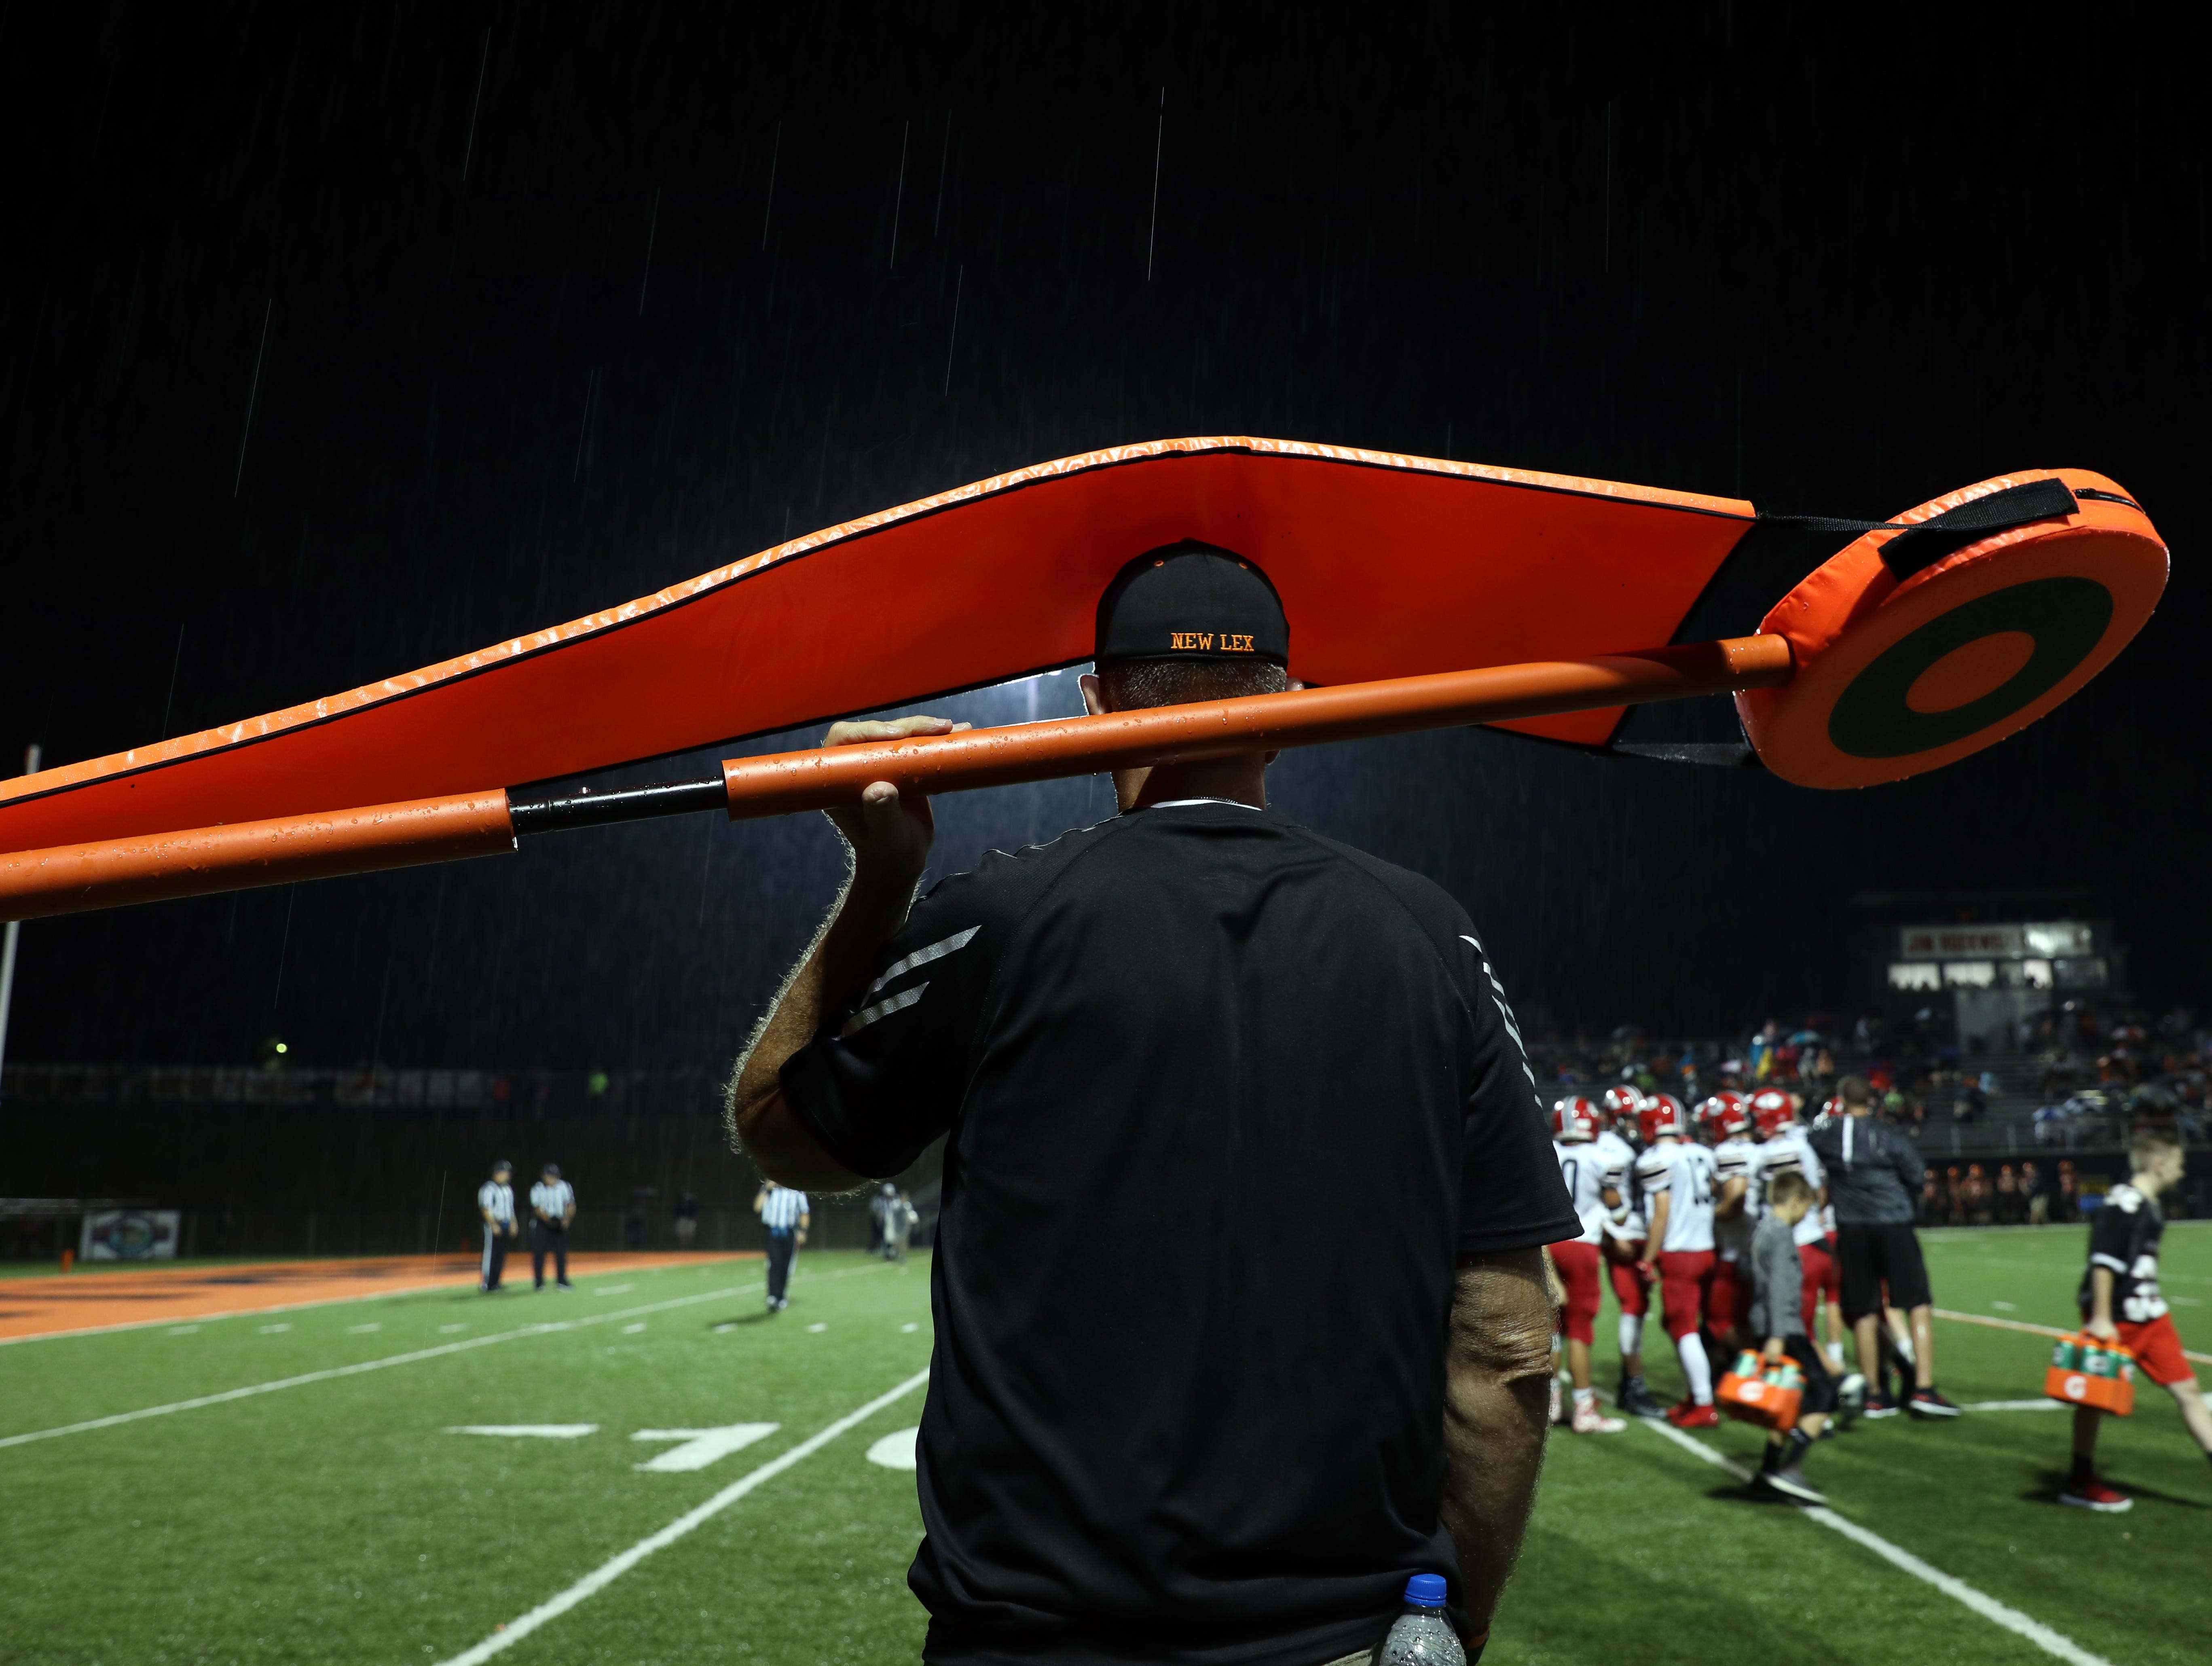 A member of the chain gang stays dry during a rainy spell in the second quarter of New Lexington's game against Coshocton.